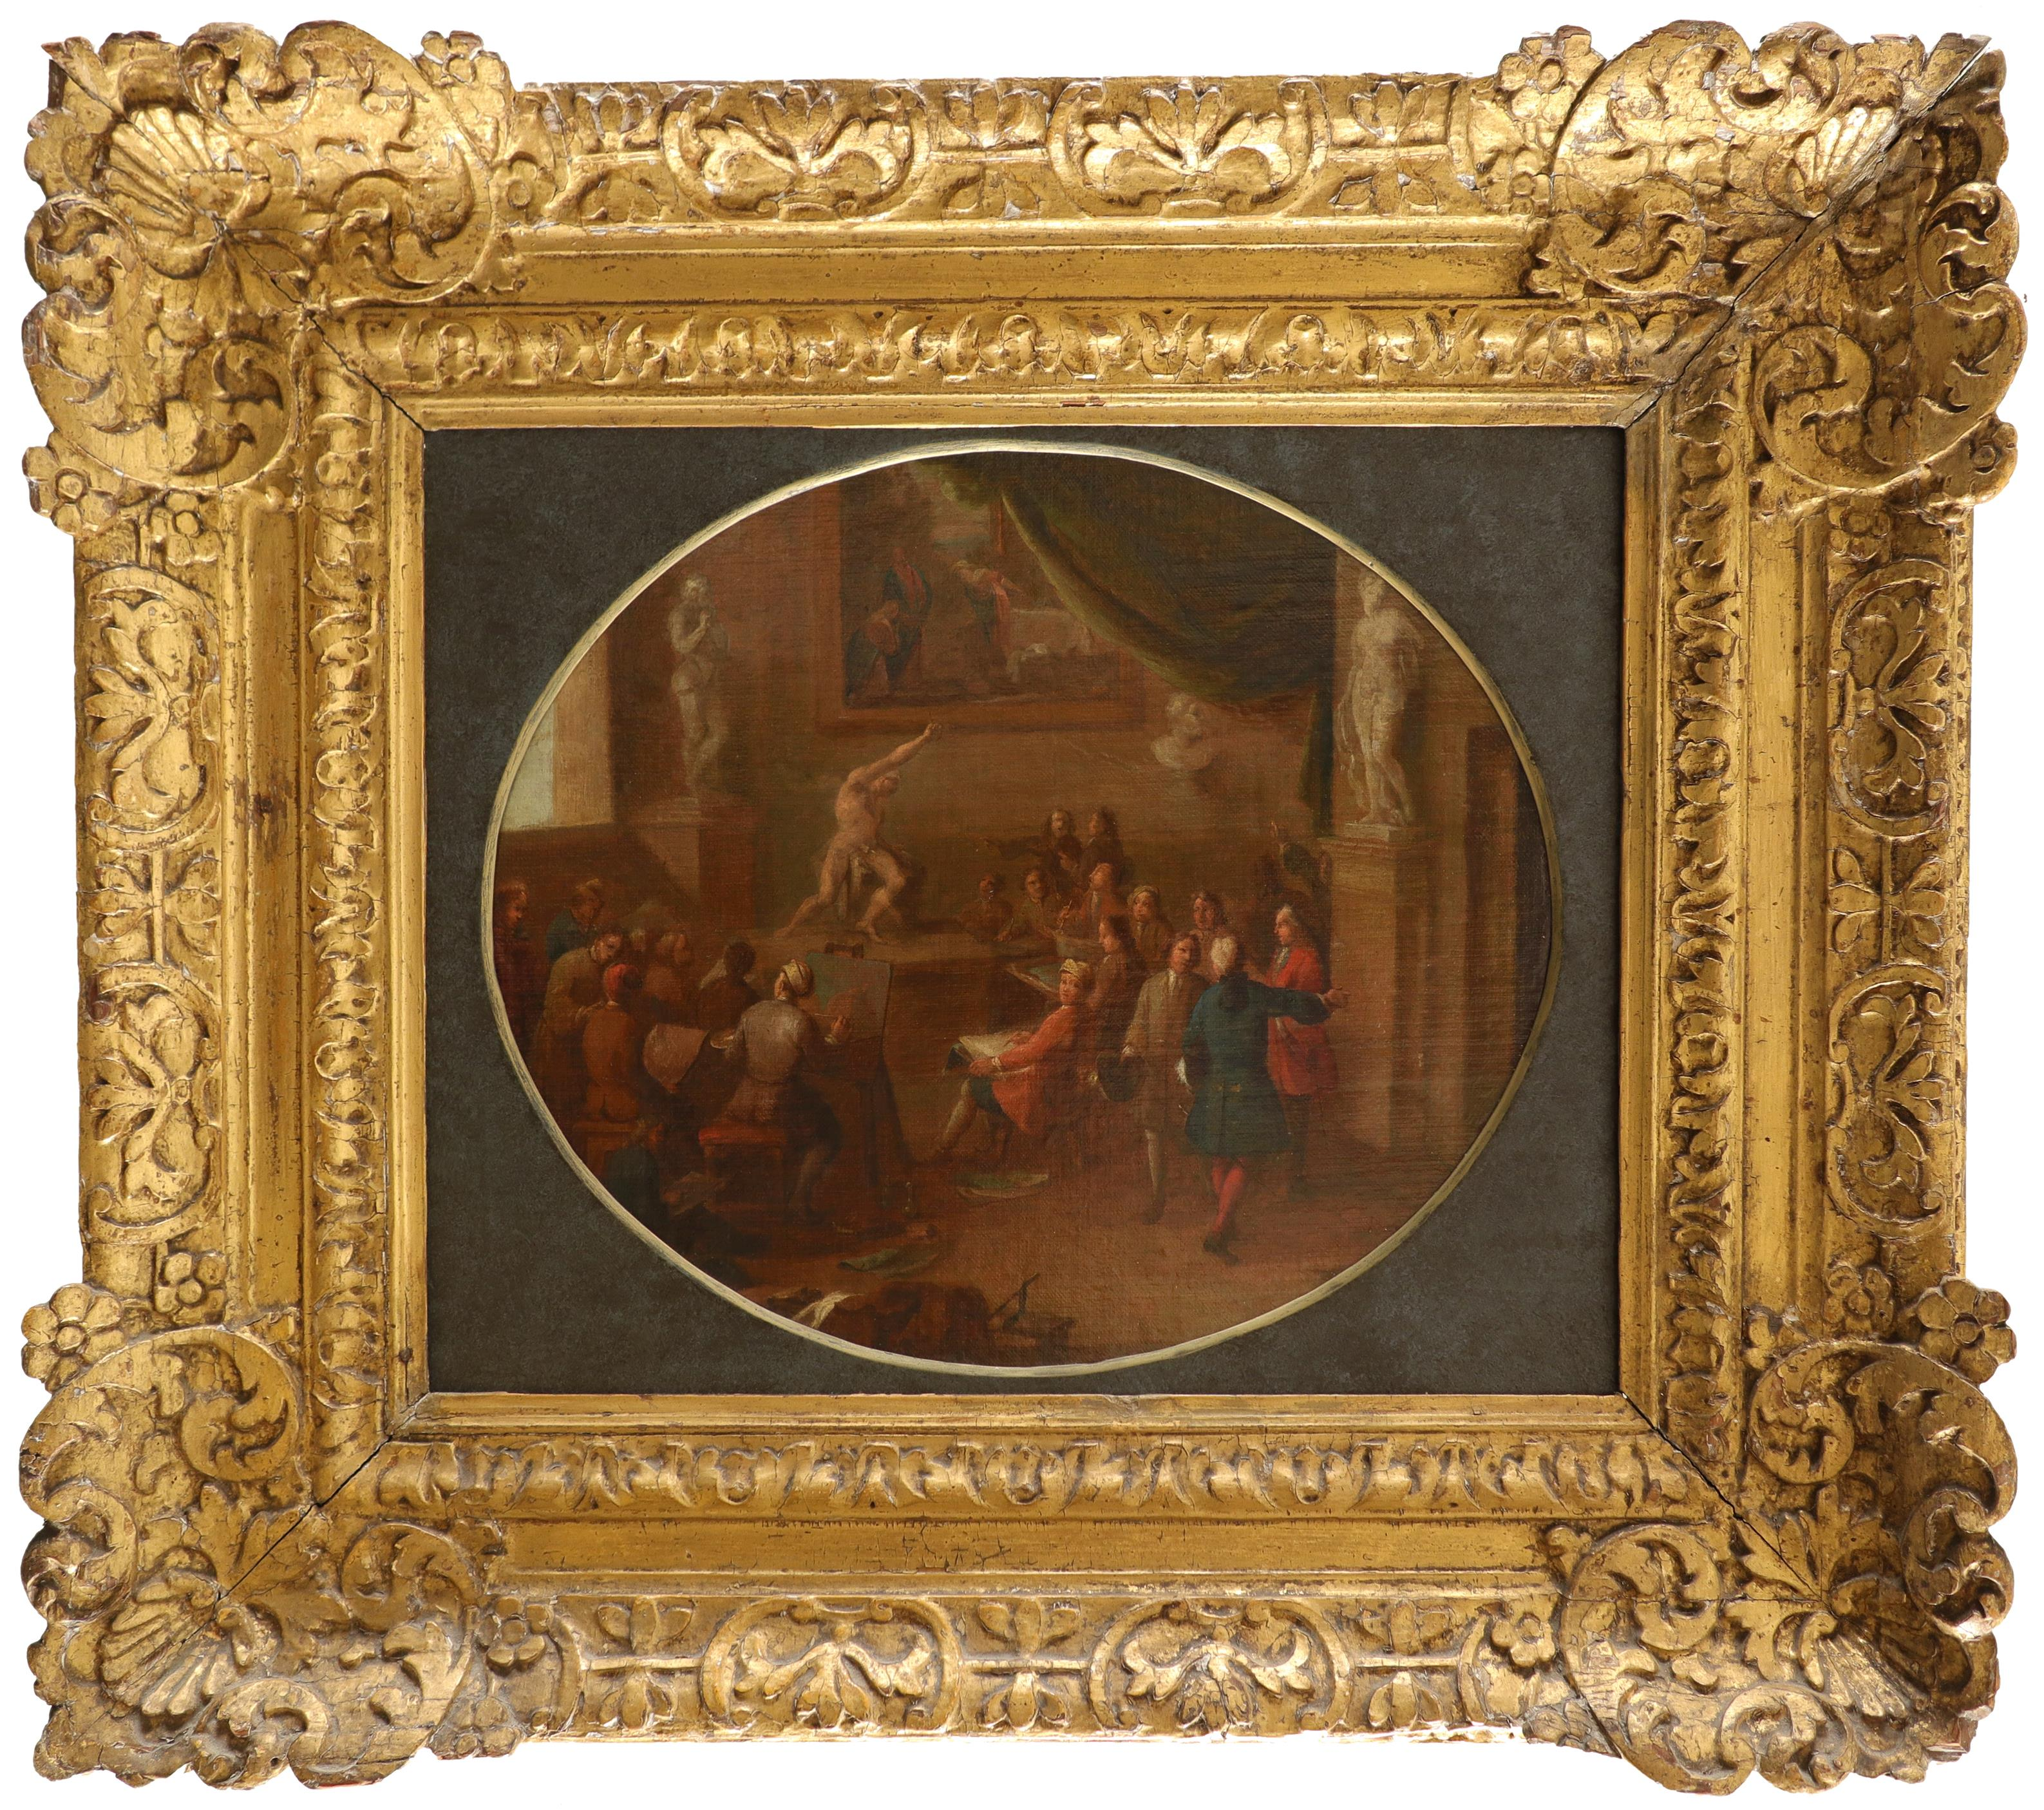 English School Early 18th Century A painting academy, possibly Sir Godfrey Kneller's academy in - Image 2 of 3